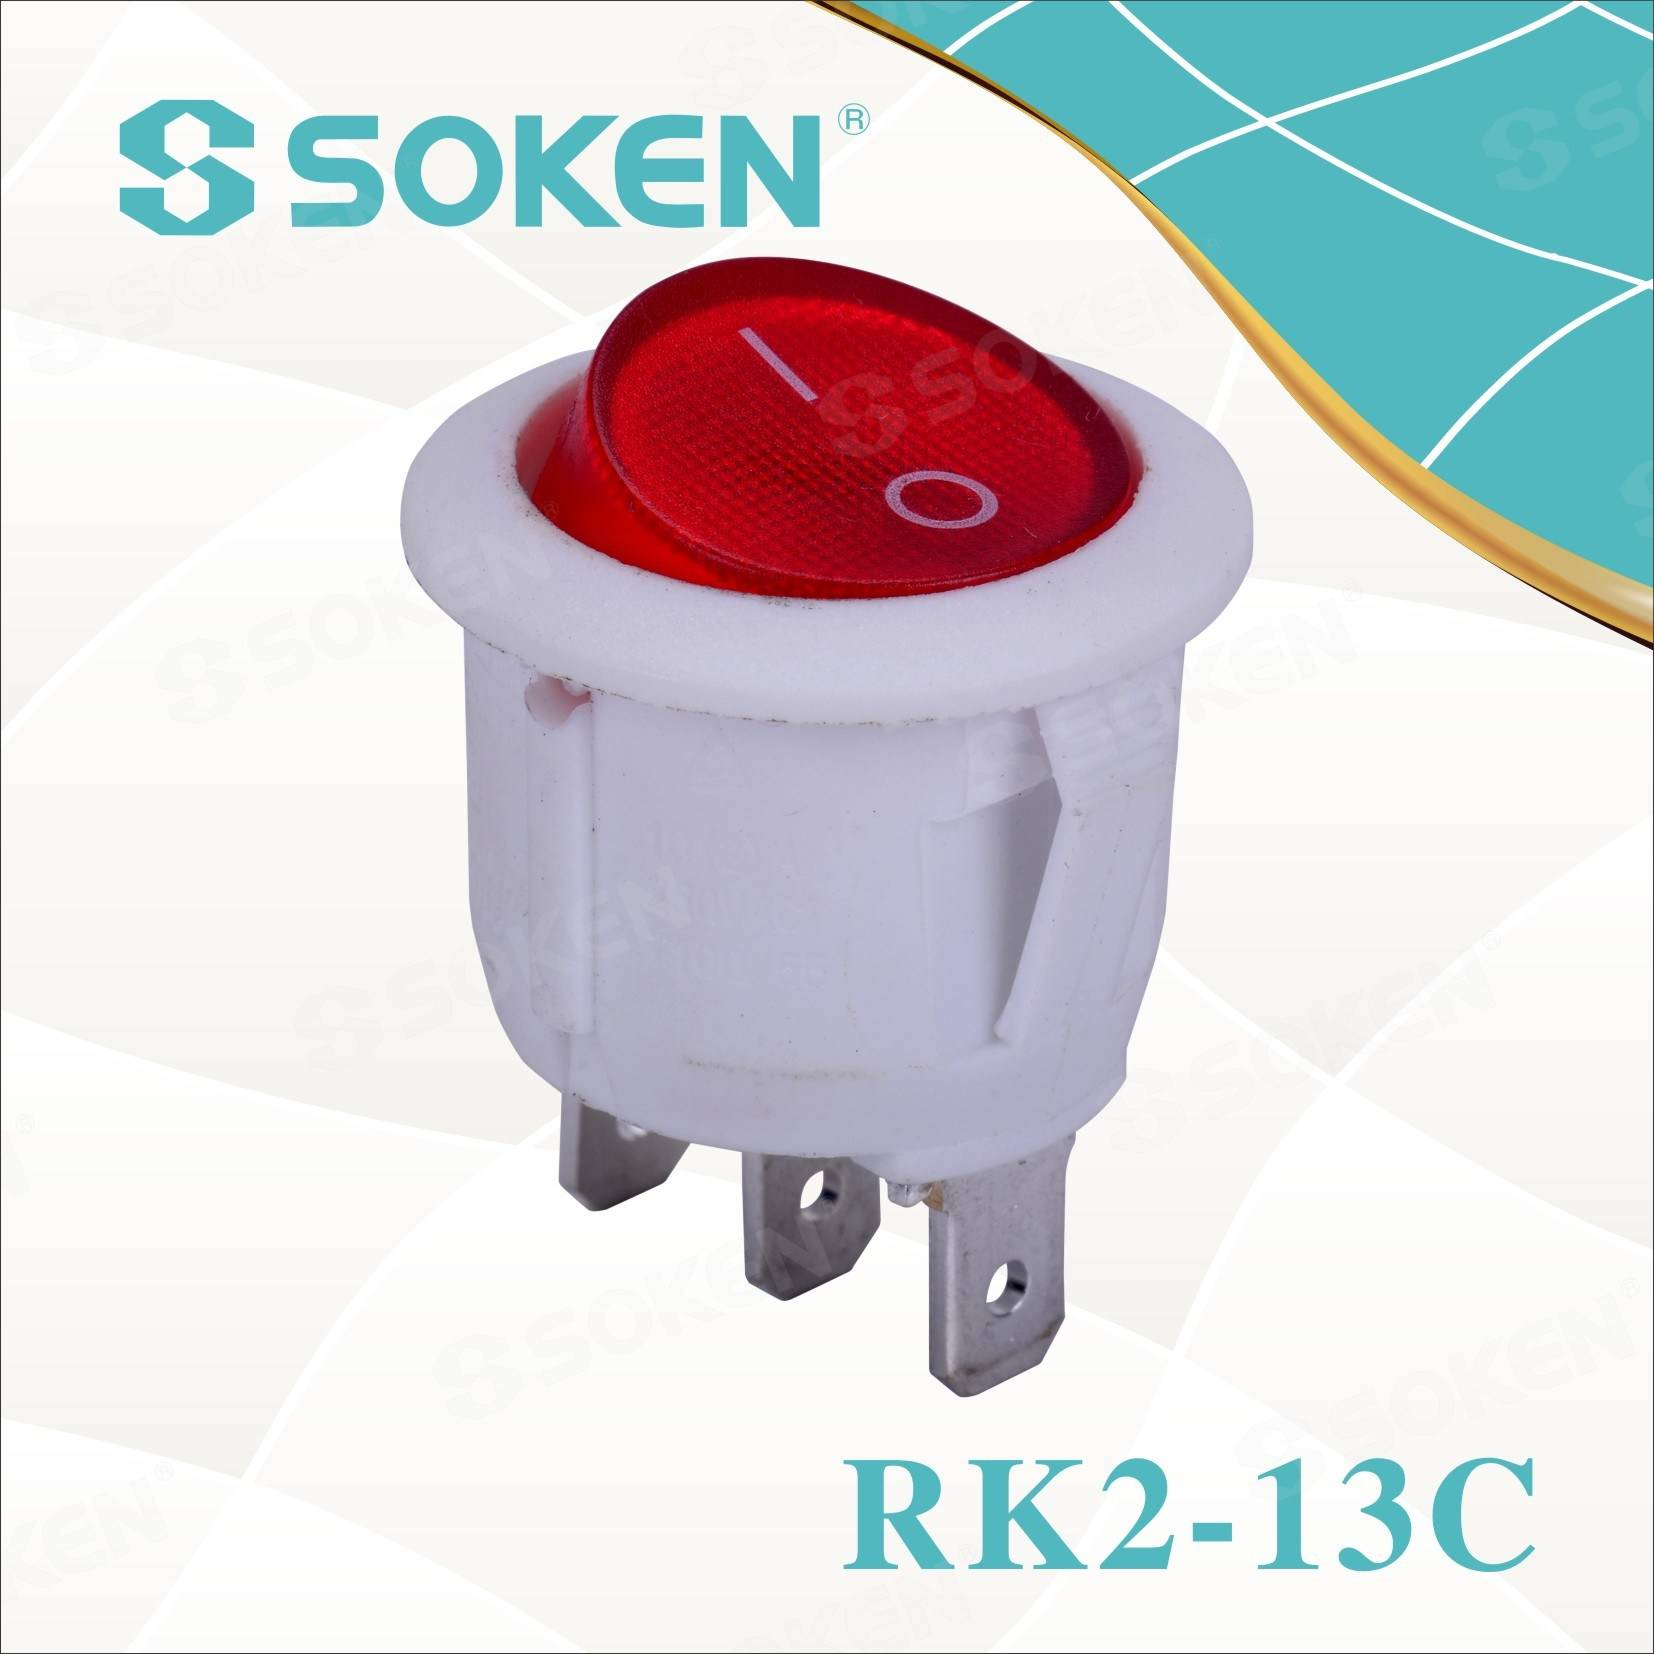 Soken Rk2-13c Round on Switch rookaha off